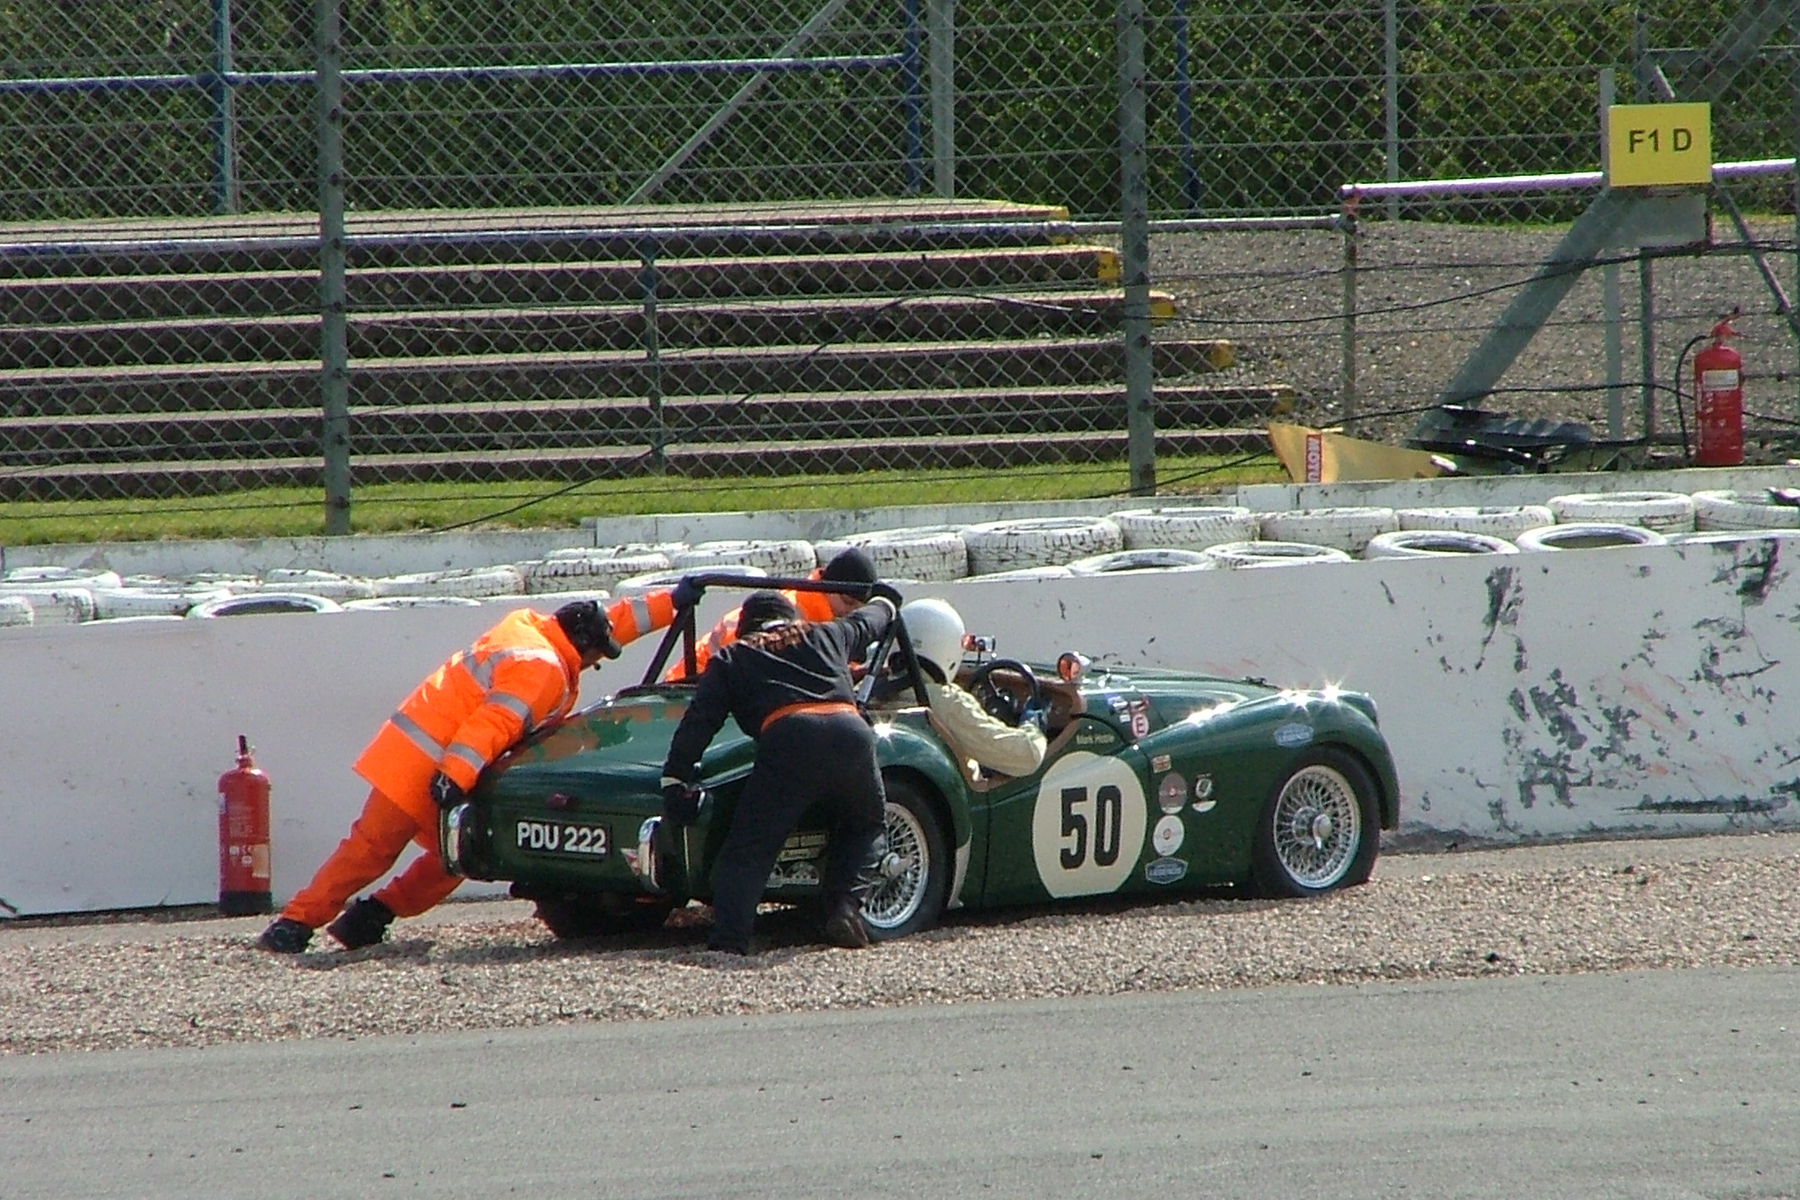 It was great to see Mark Hoble out with us in his Triumph TR2 after an absence of some years, but his practice was not without drama as a clutch problem forced him to pull off at the marshals post just beyond Copse. Mark resolved the problem and was able to start and finish the race.  Photo - John Turner